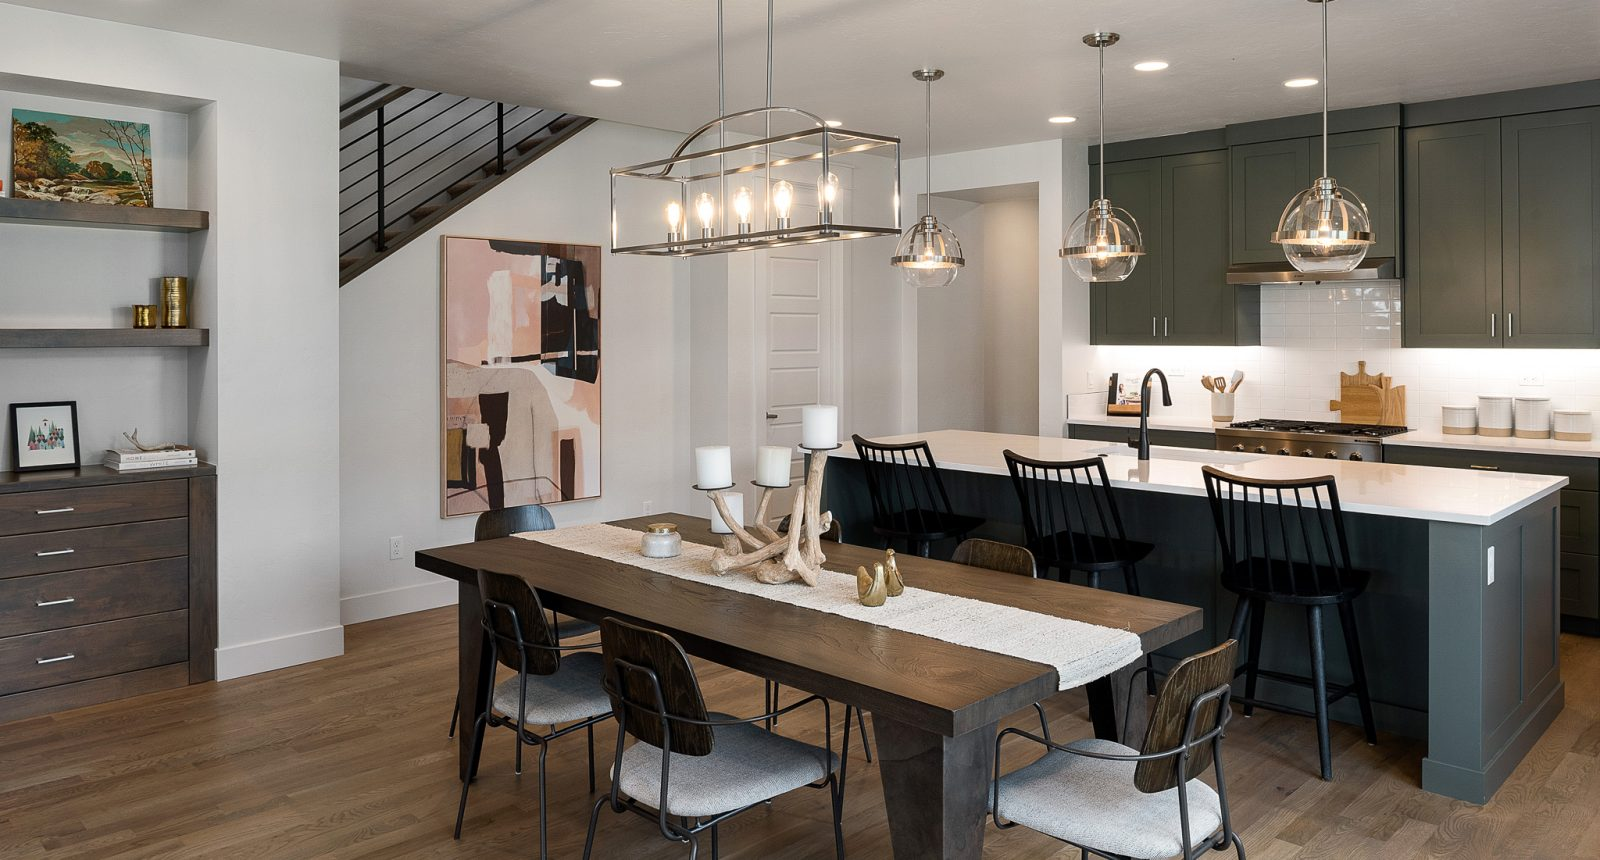 Boise Parade of Homes